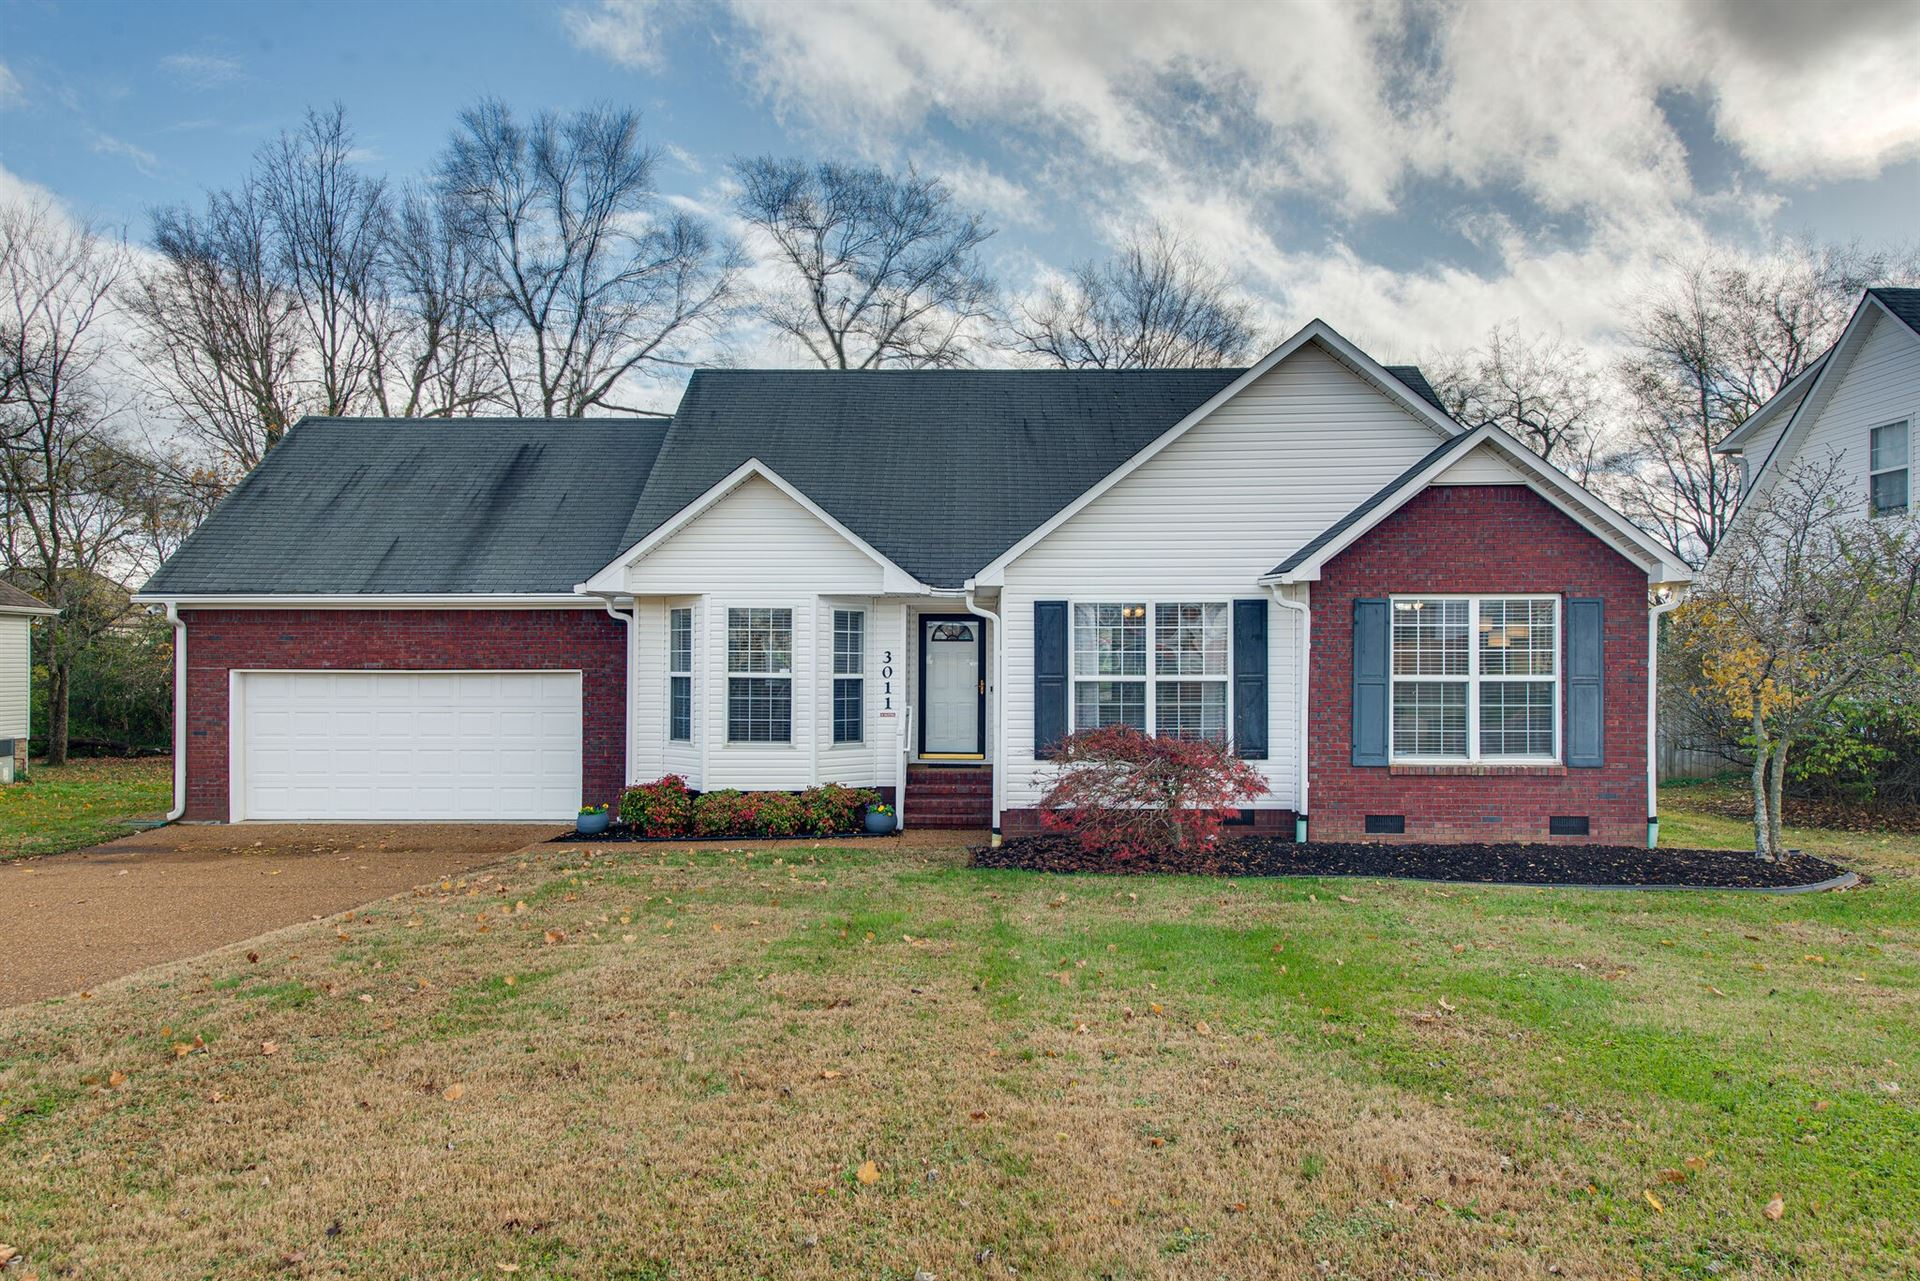 3011 Candlelite Dr, Spring Hill, TN 37174 - MLS#: 2210782